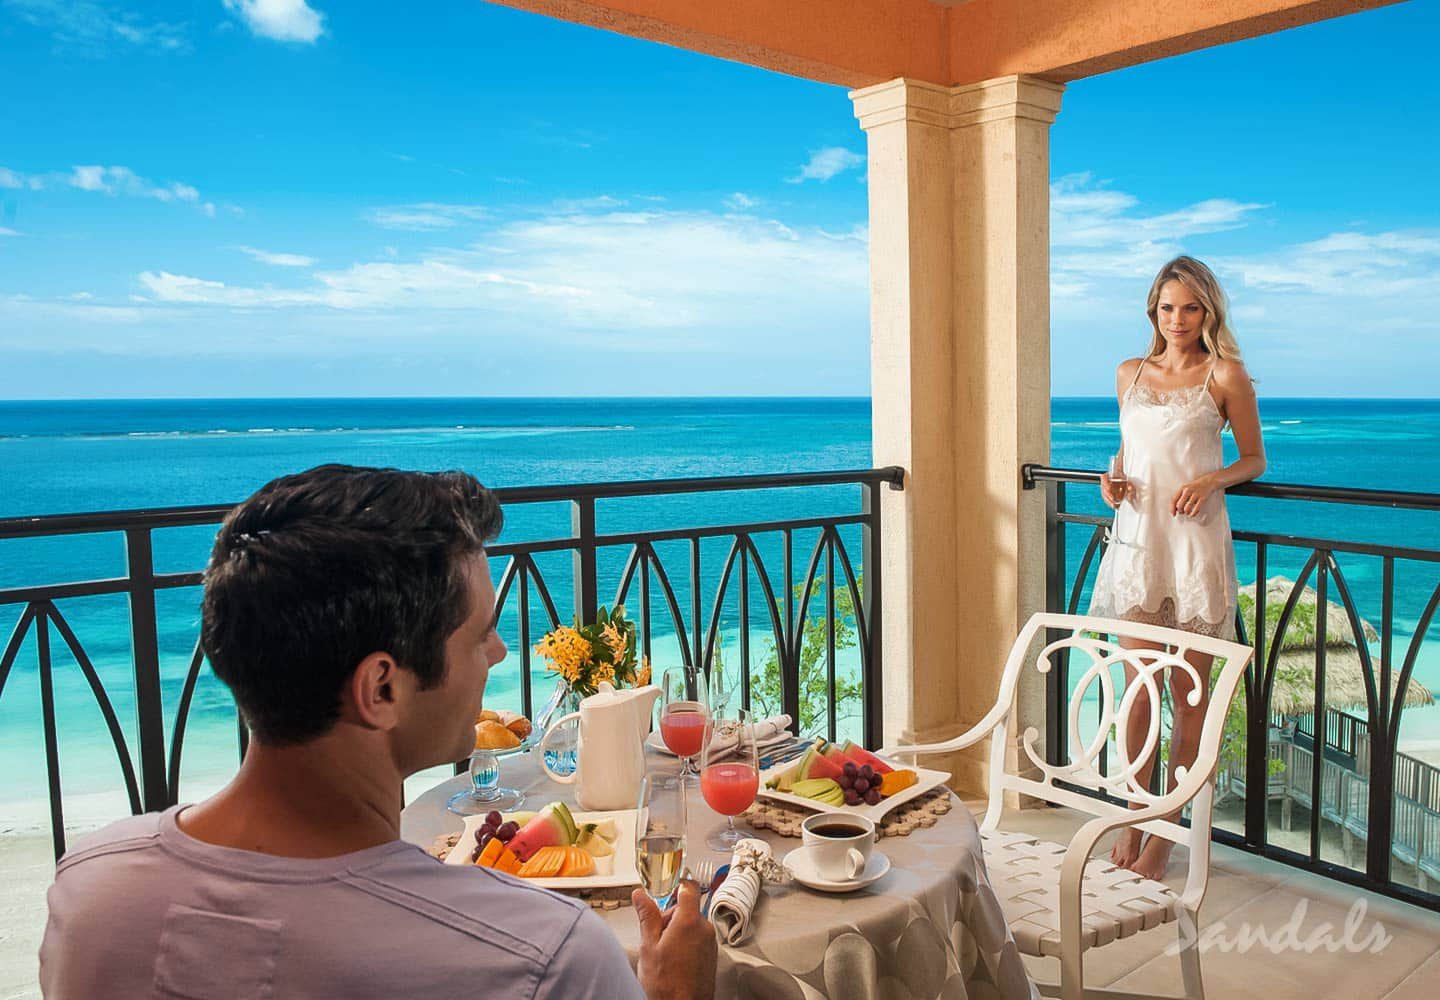 couple on their private balcony with ocean view at the Sandals all inclusive vacation resort South Coast Whitehouse, Jamaica